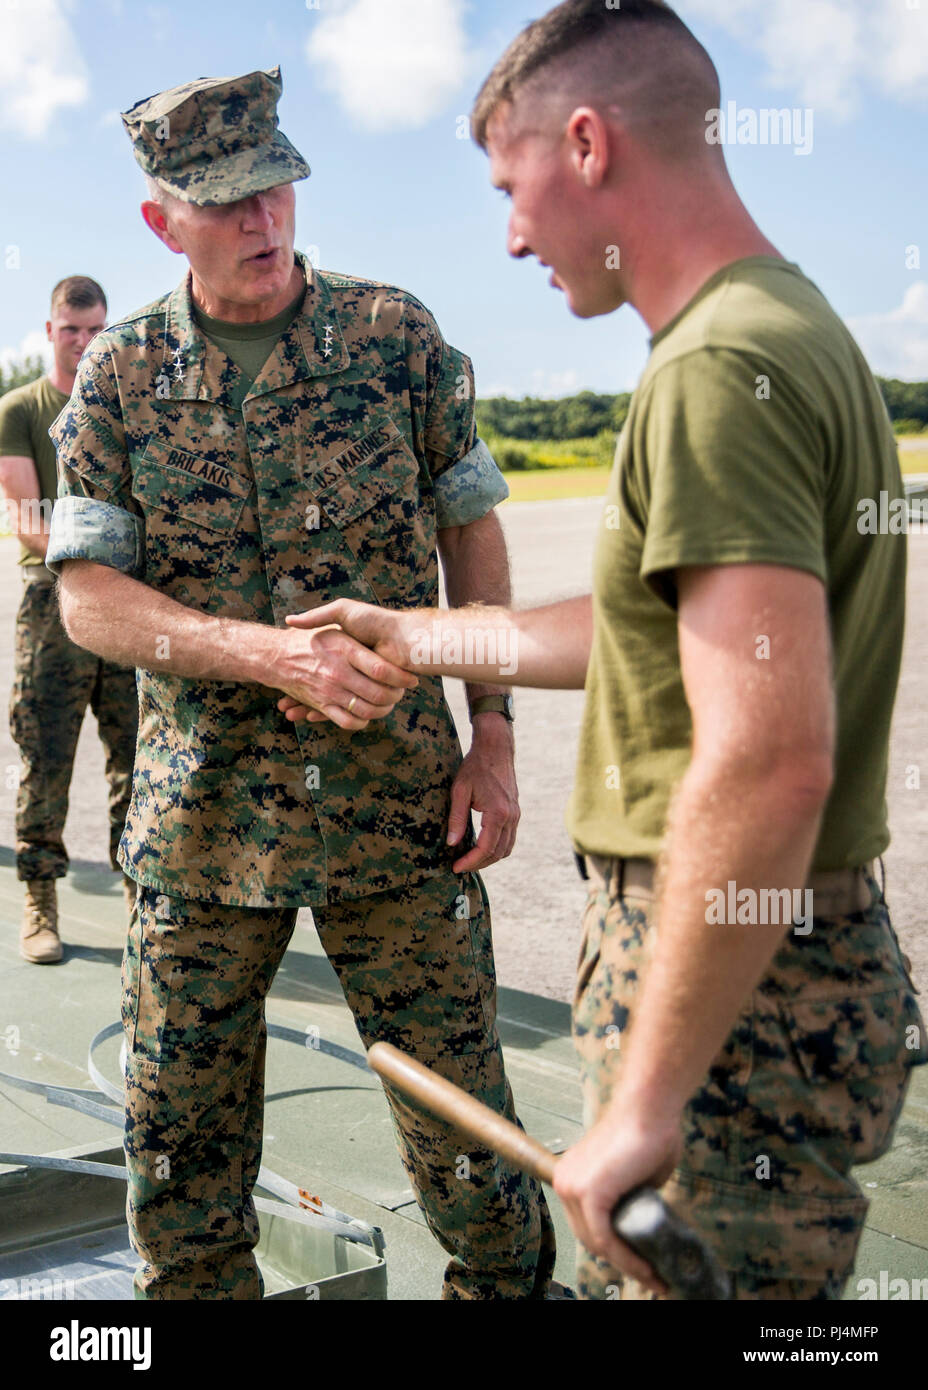 U.S. Marine Corps Lt.Gen. Mark A. Brilakis speaks to a Marine with Marine Wing Support Squadron 272 during his visitation on Marine Corps Auxiliary Landing Field Bogue, August 28, 2018. Lt.Gen. Brilakis visited the 2nd Marine Aircraft Wing (2d MAW) in order to orient himself on the current status of 2d Maw. Brilakis is the commanding general of Marine Forces Command. Stock Photo